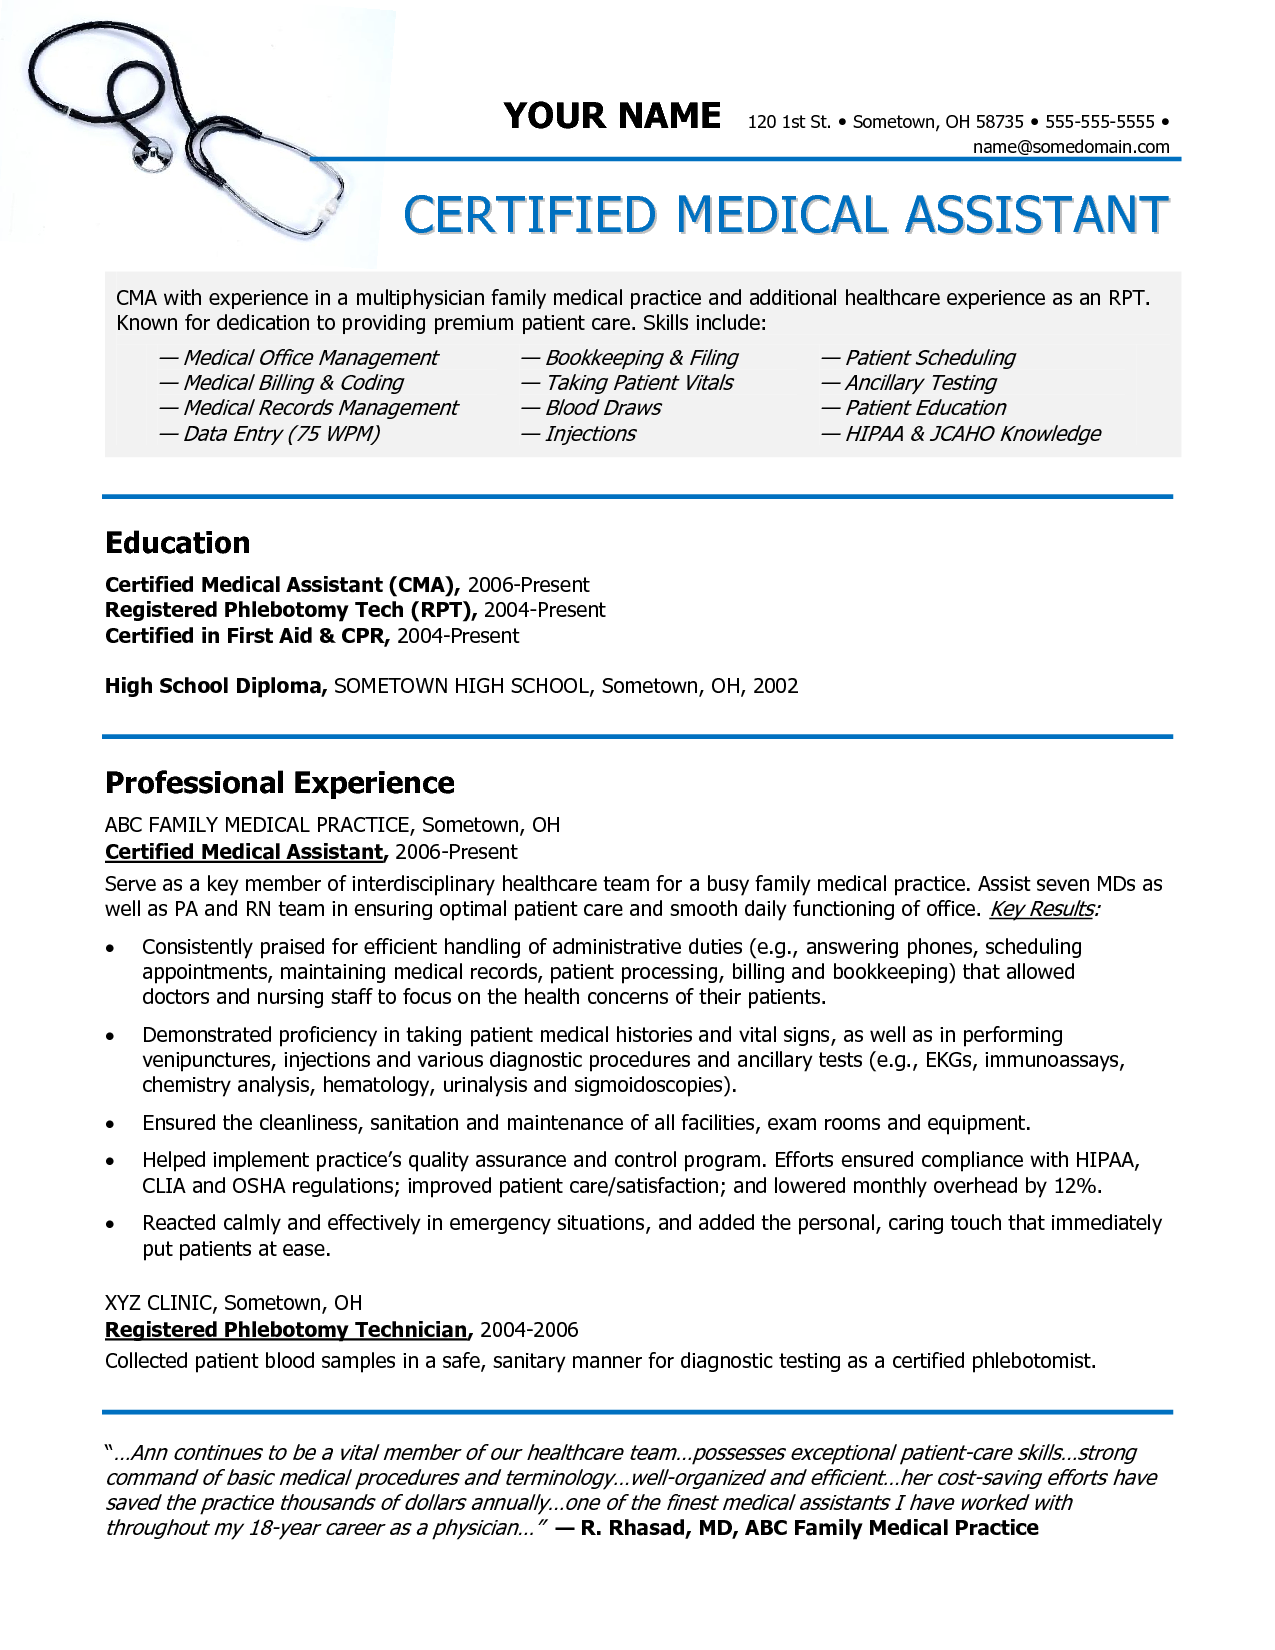 medical assistant resume entry level examples medical assistant medical assistant resume entry level examples 18 medical assistant